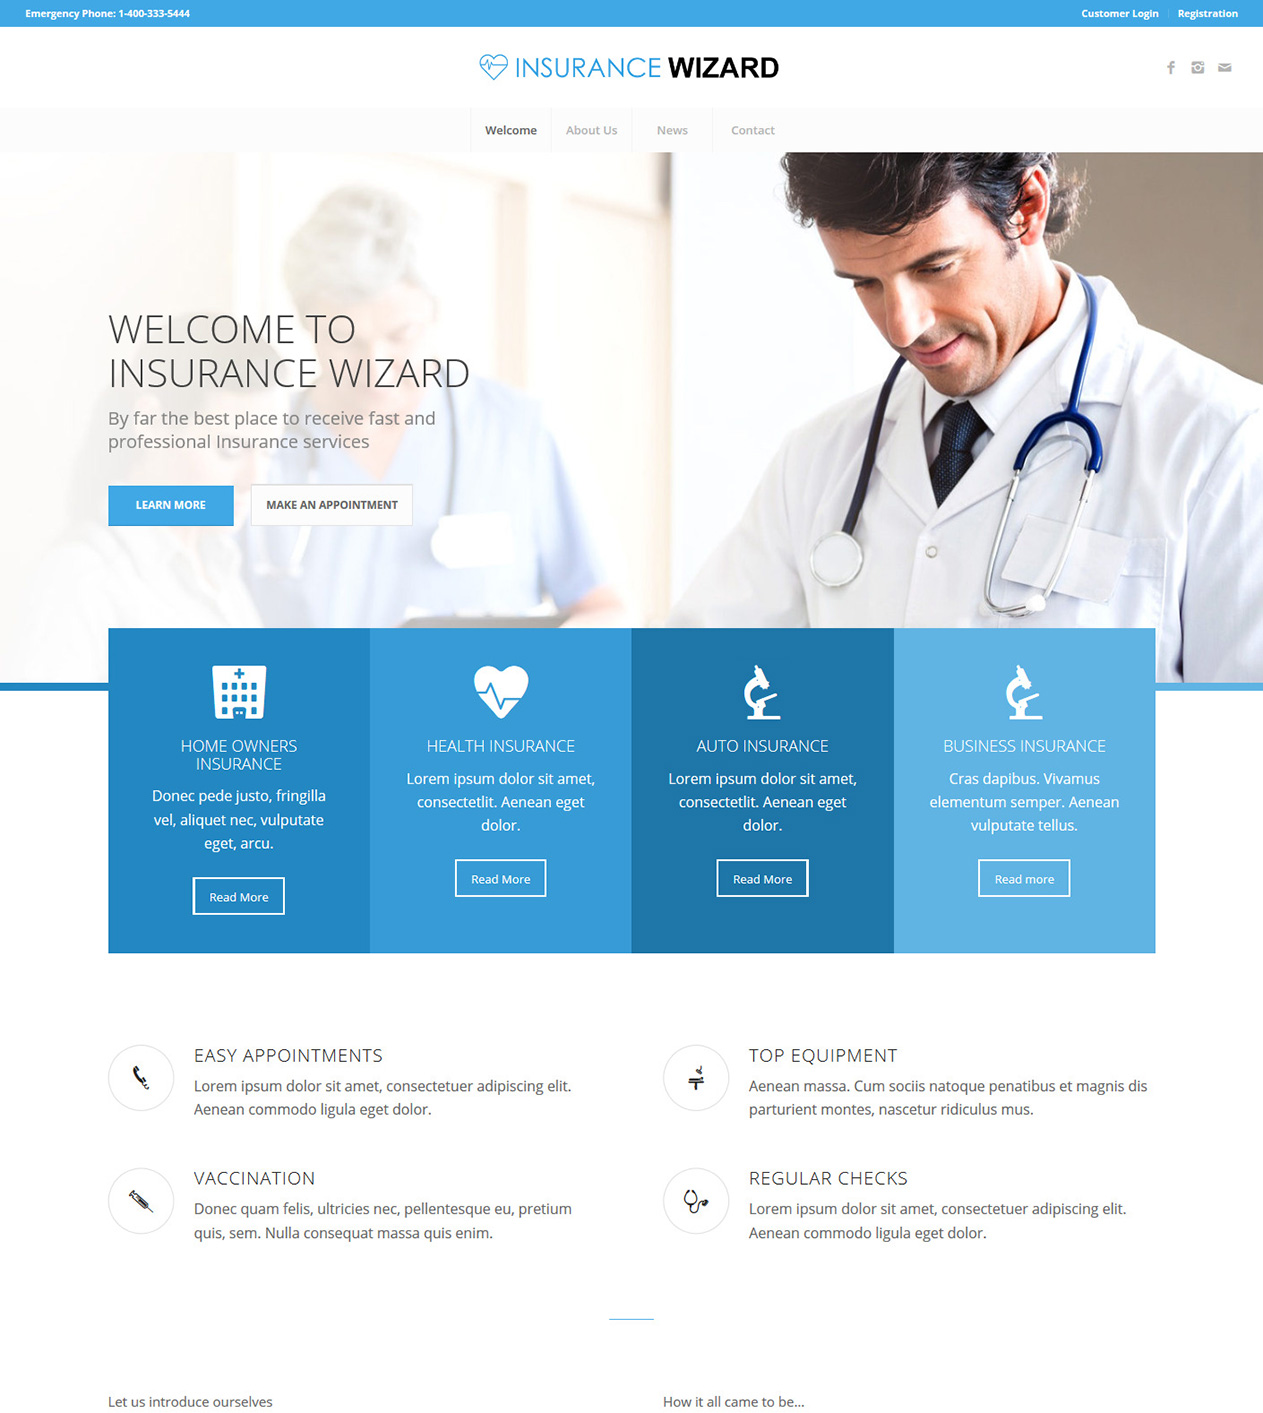 Insurance Wizard thumb - Our Themes